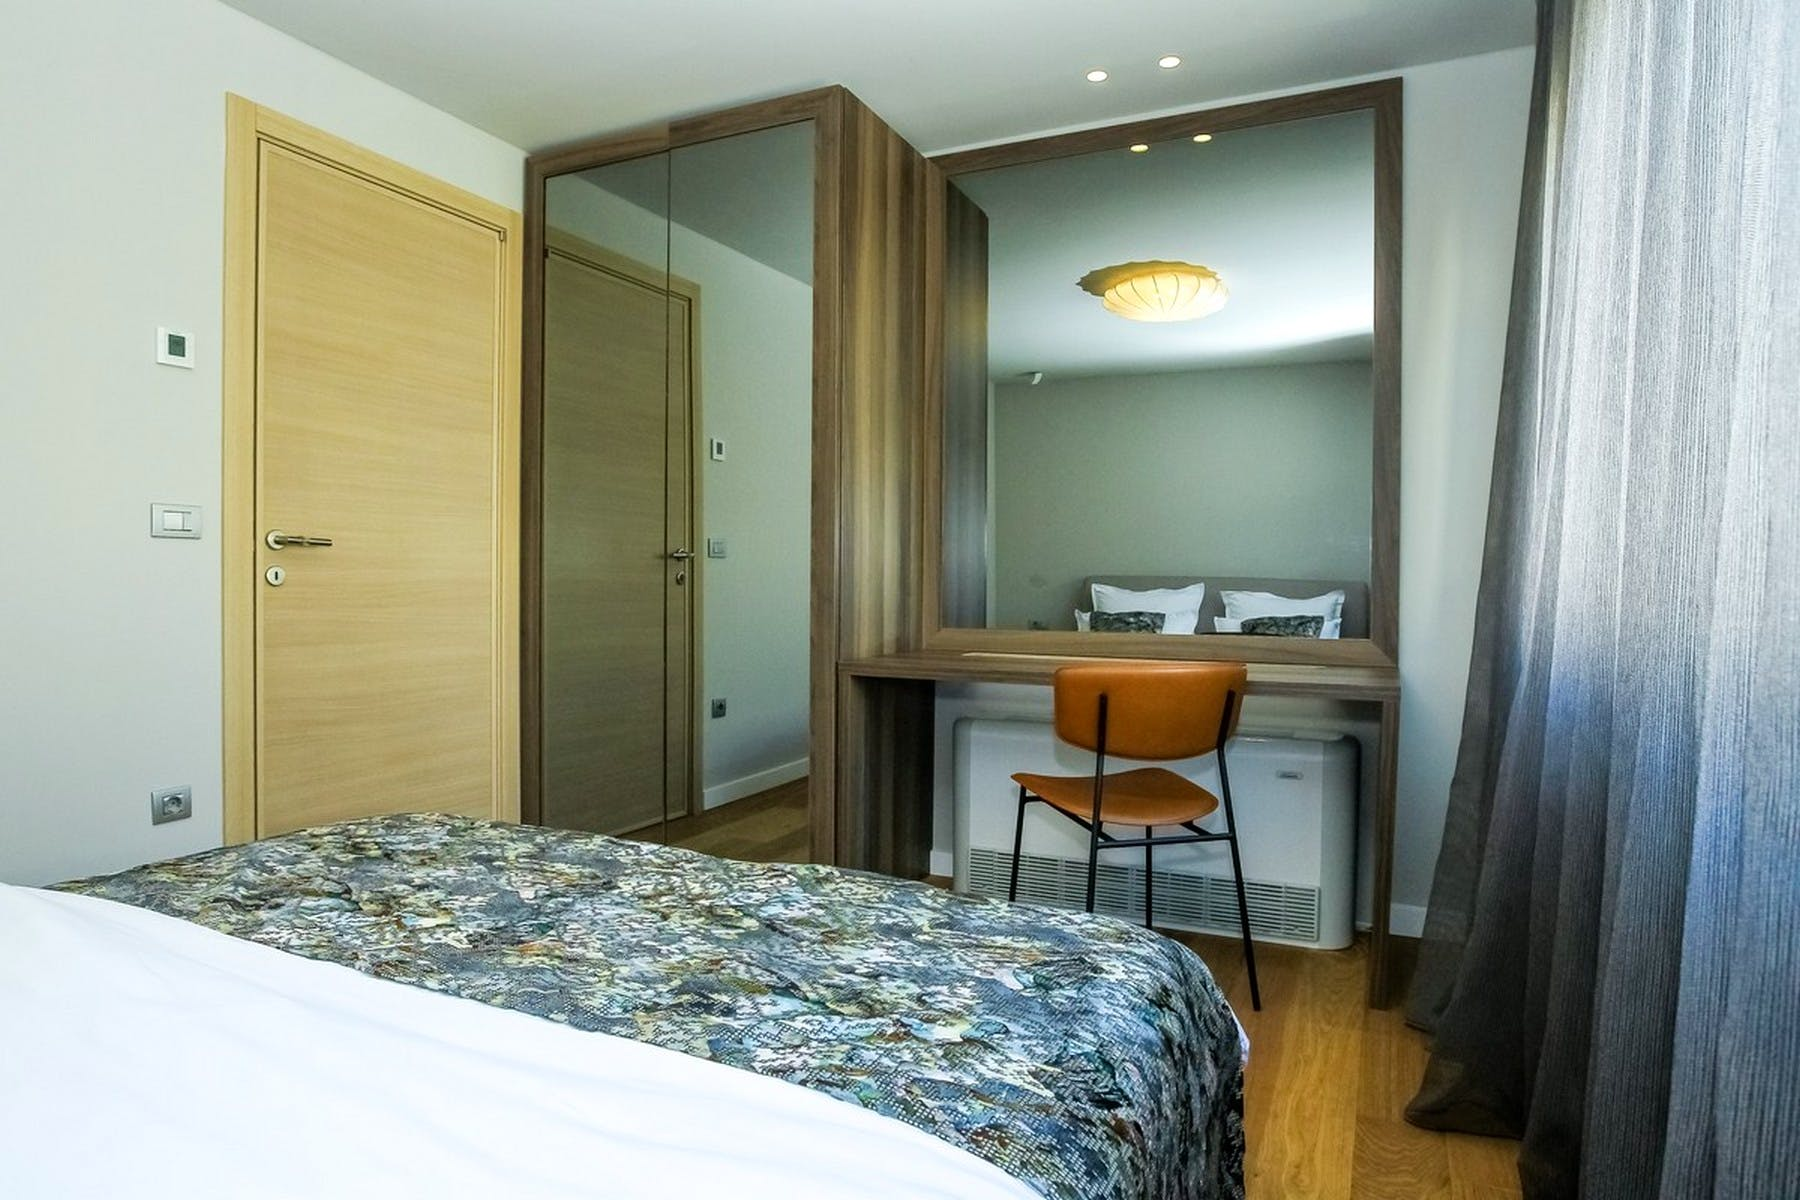 Large mirrors in the bedroom